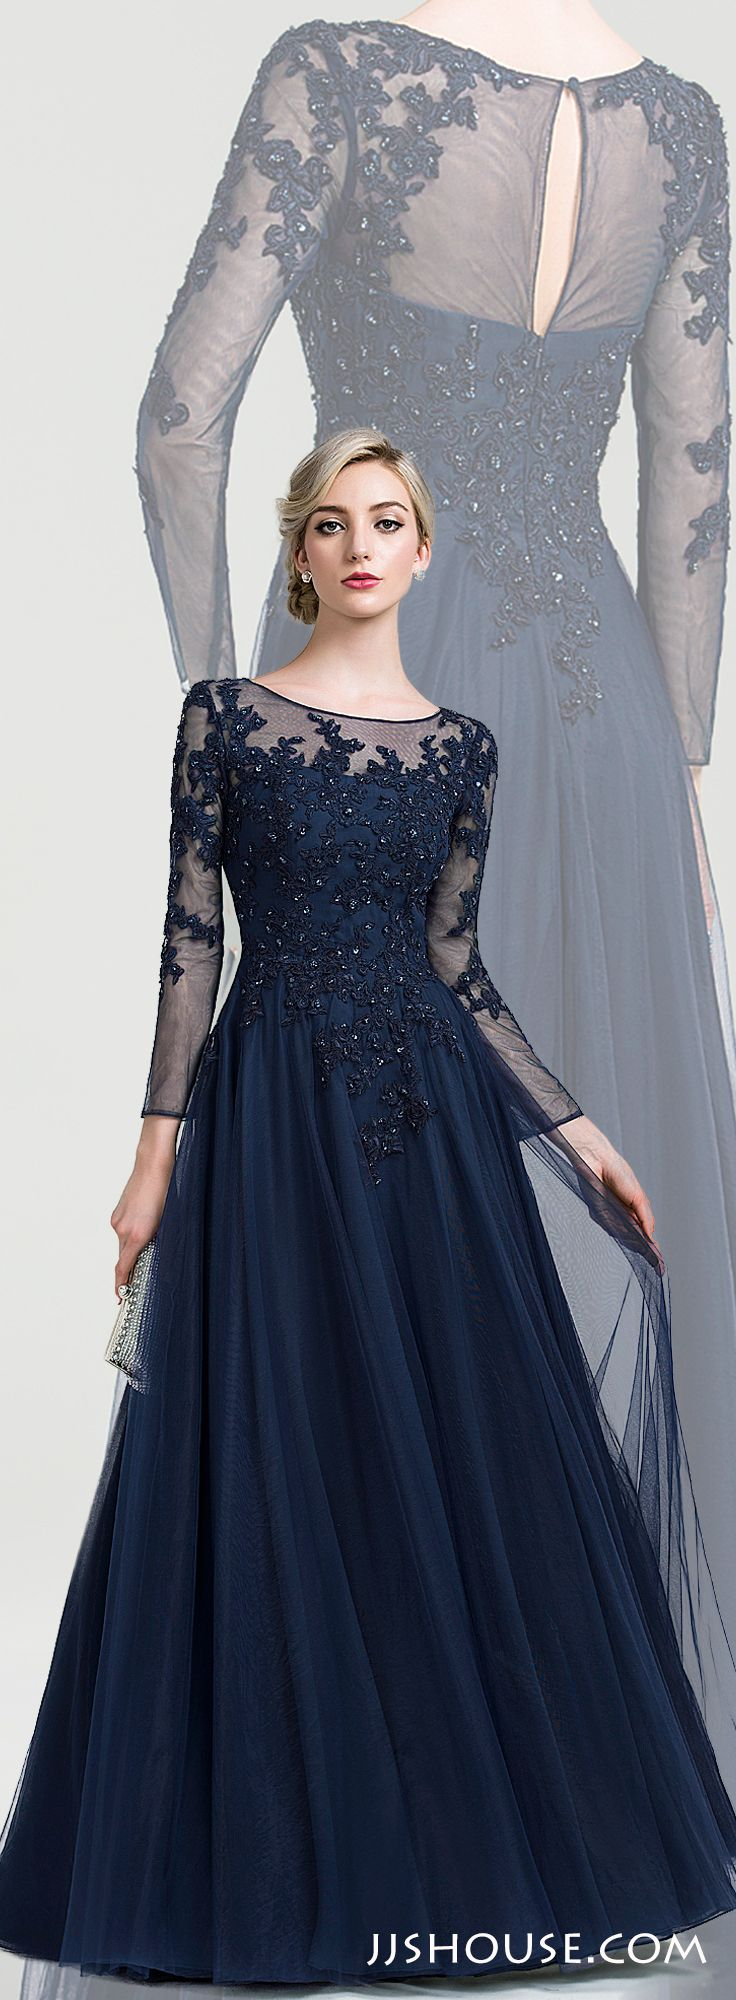 Lace and tulle mother of the bridegroom dress featuring delicate